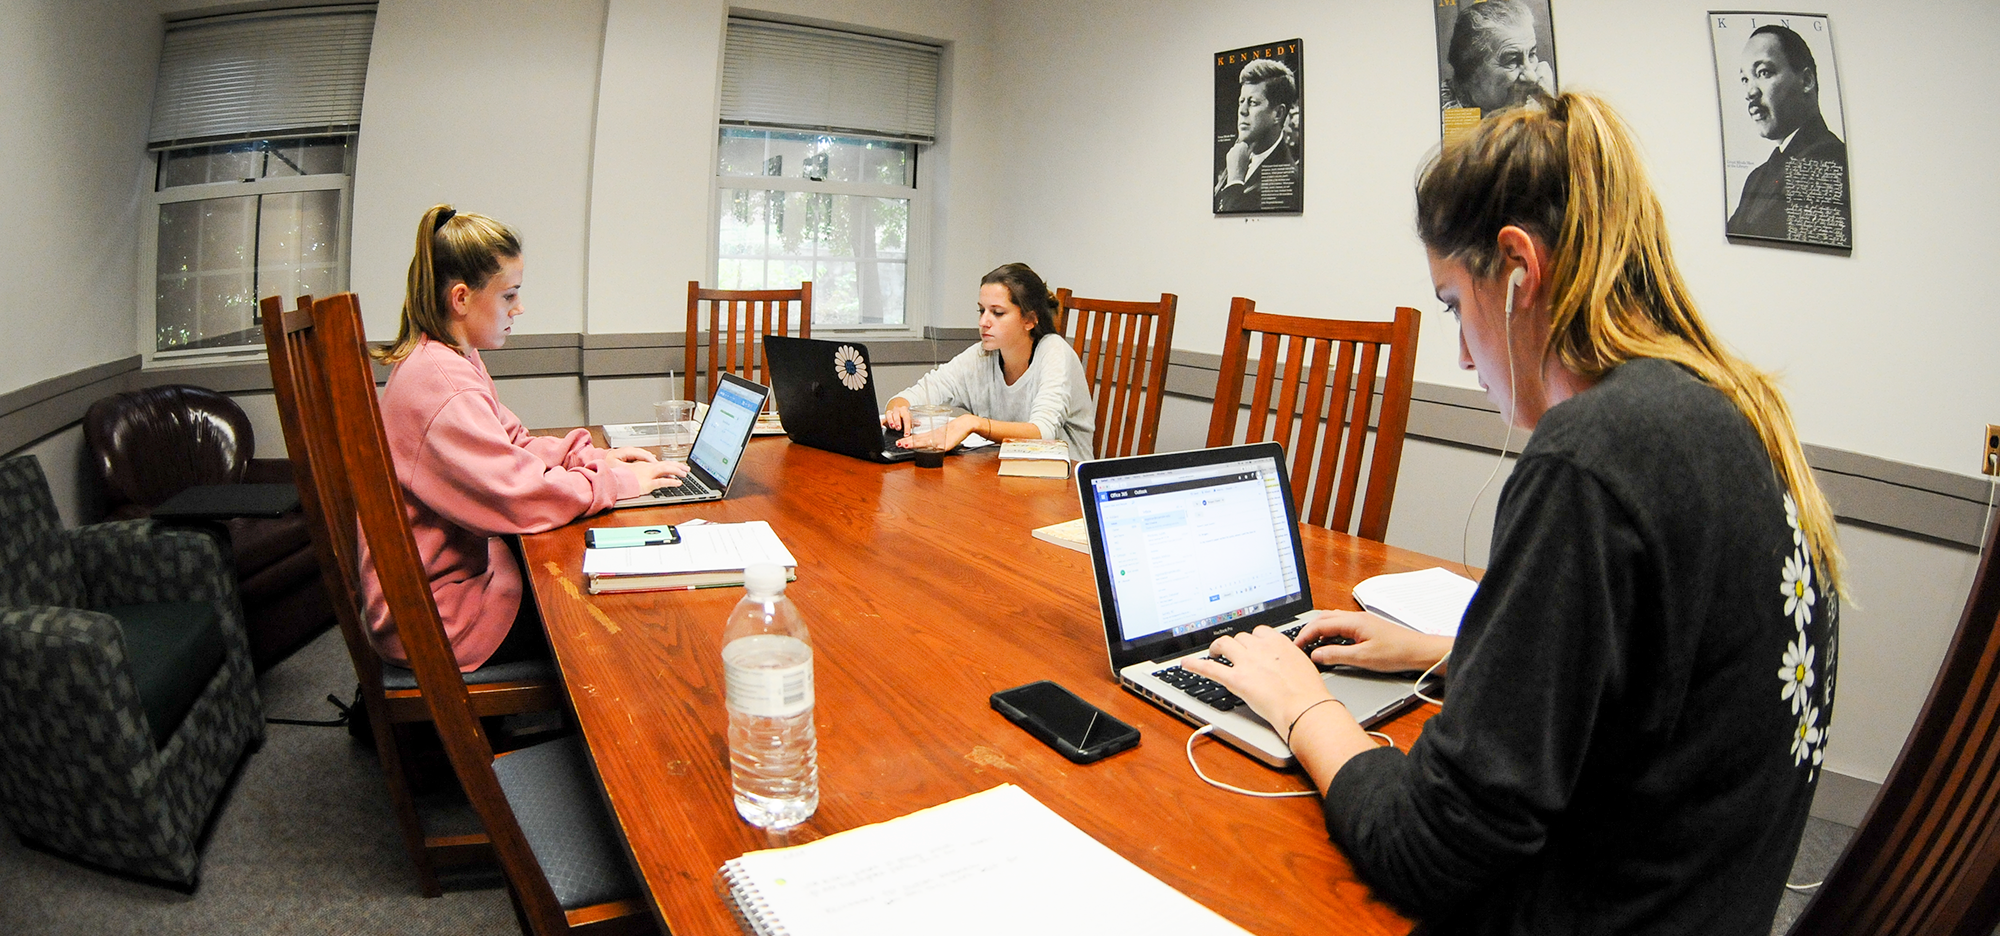 RC students studying in a group study room on the ground floor.